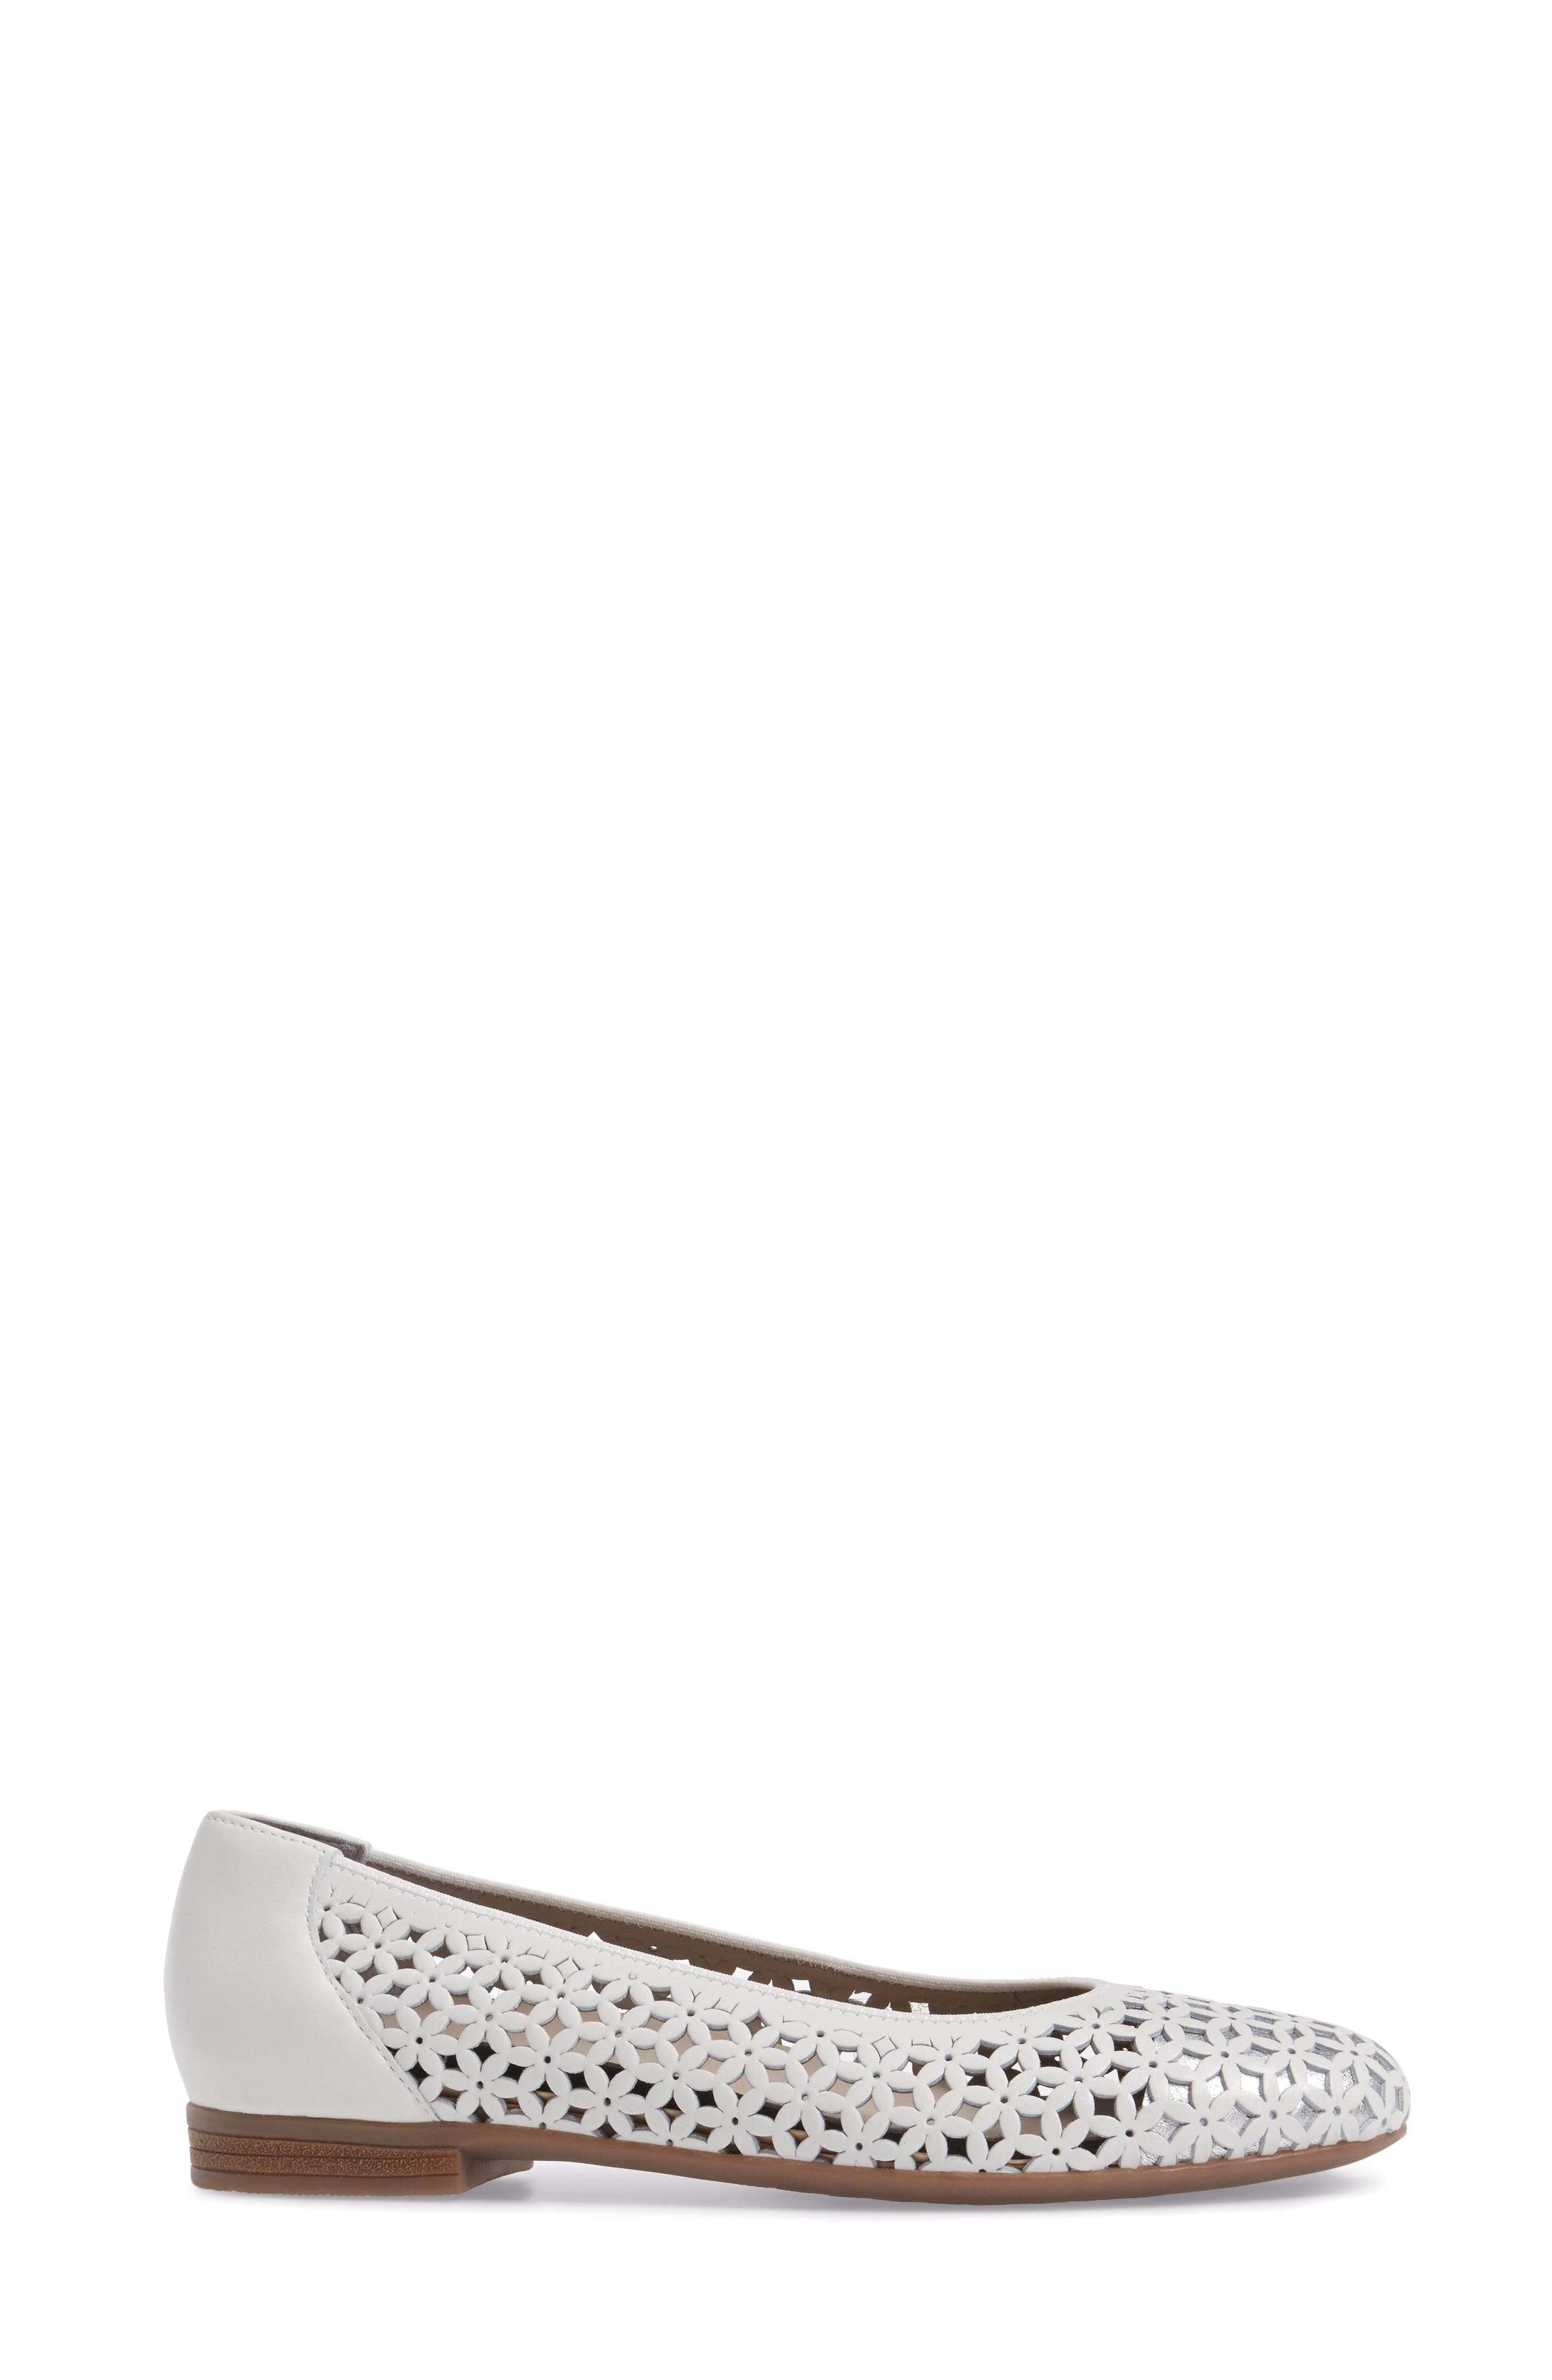 Stephanie Perforated Ballet Flat,                             Alternate thumbnail 3, color,                             101